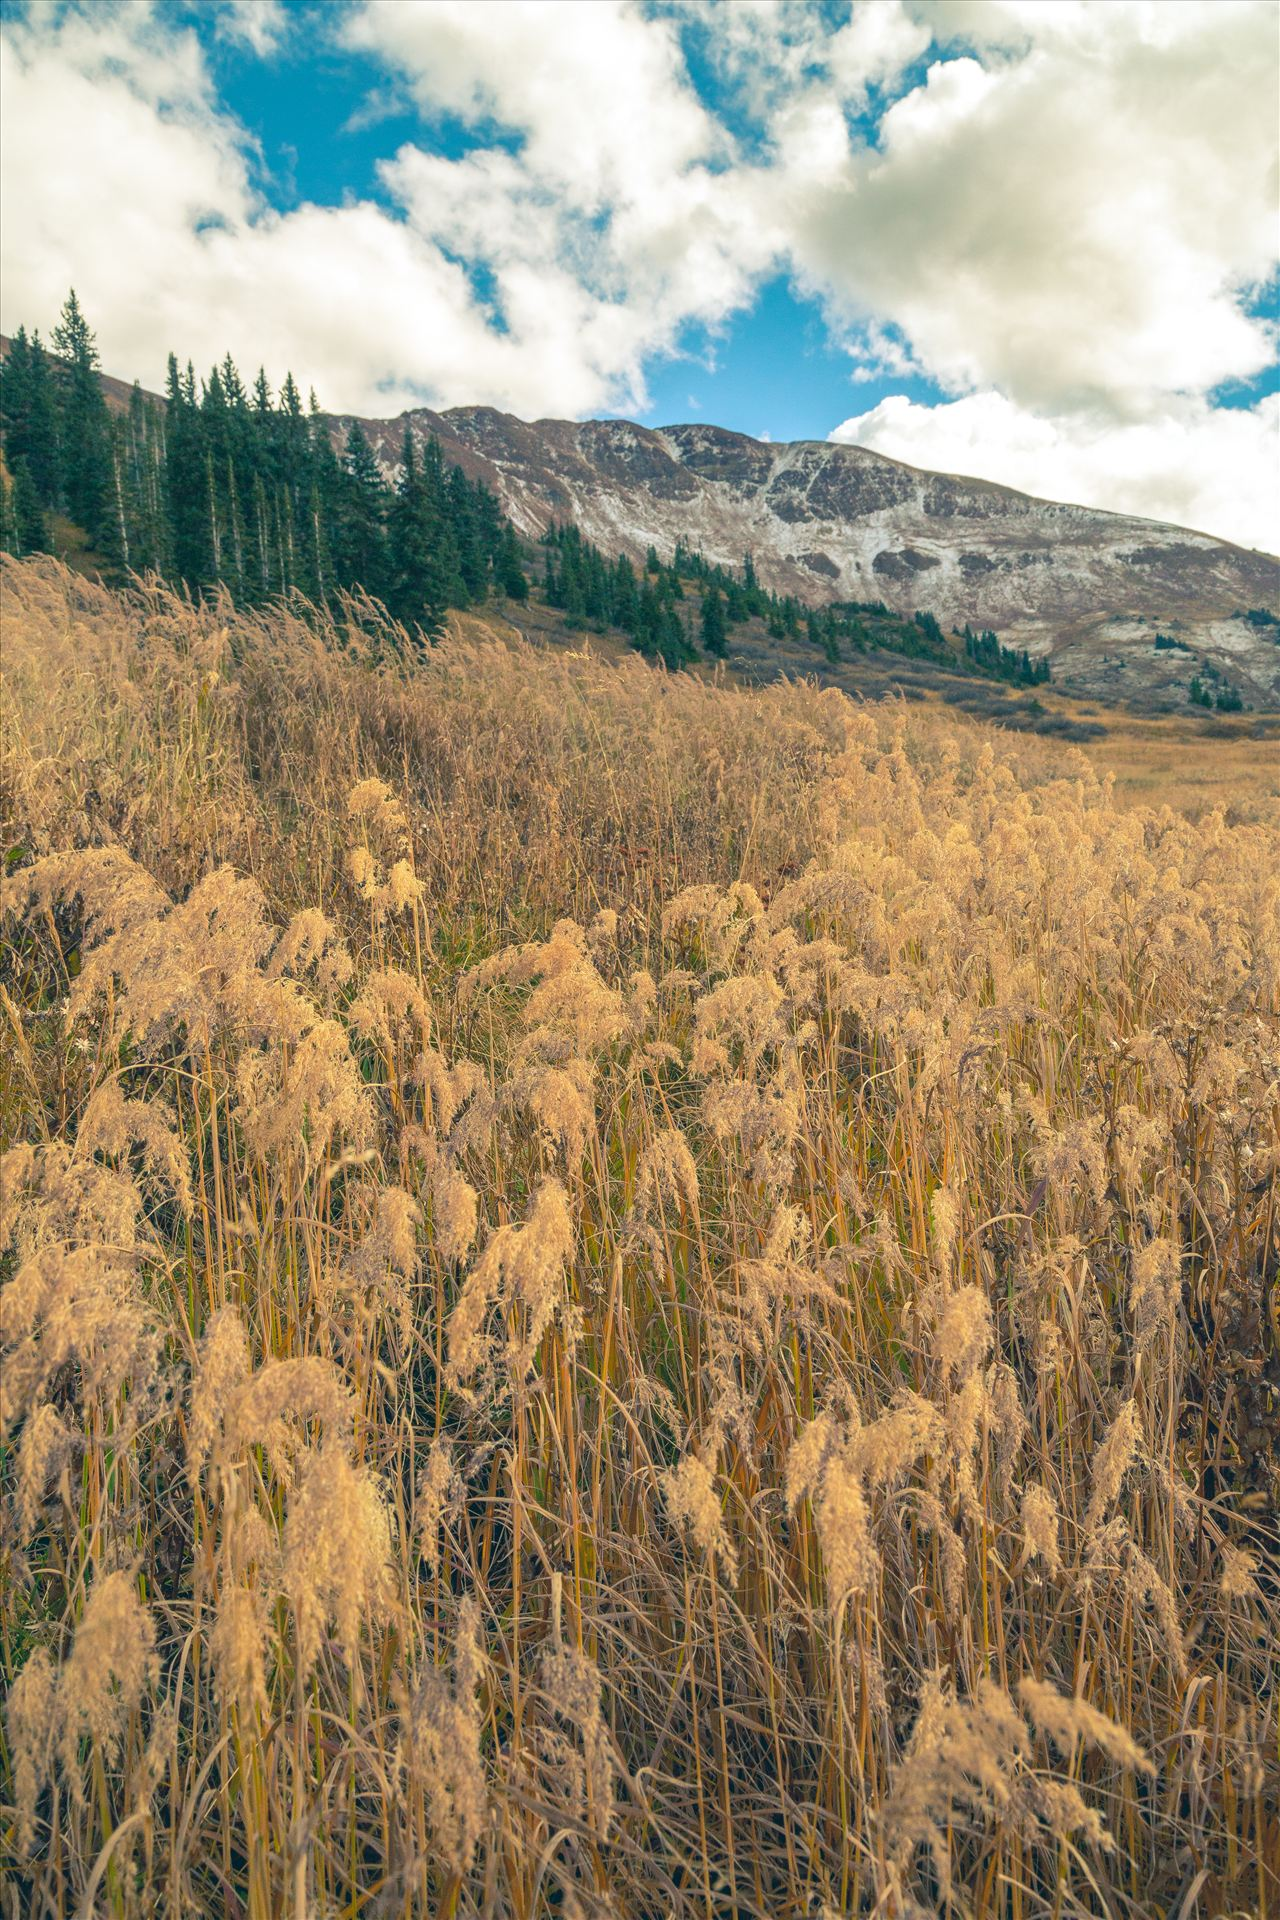 Into the Wild Mount Baldy Wilderness Area near Crested Butte, Colorado. by Scott Smith Photos